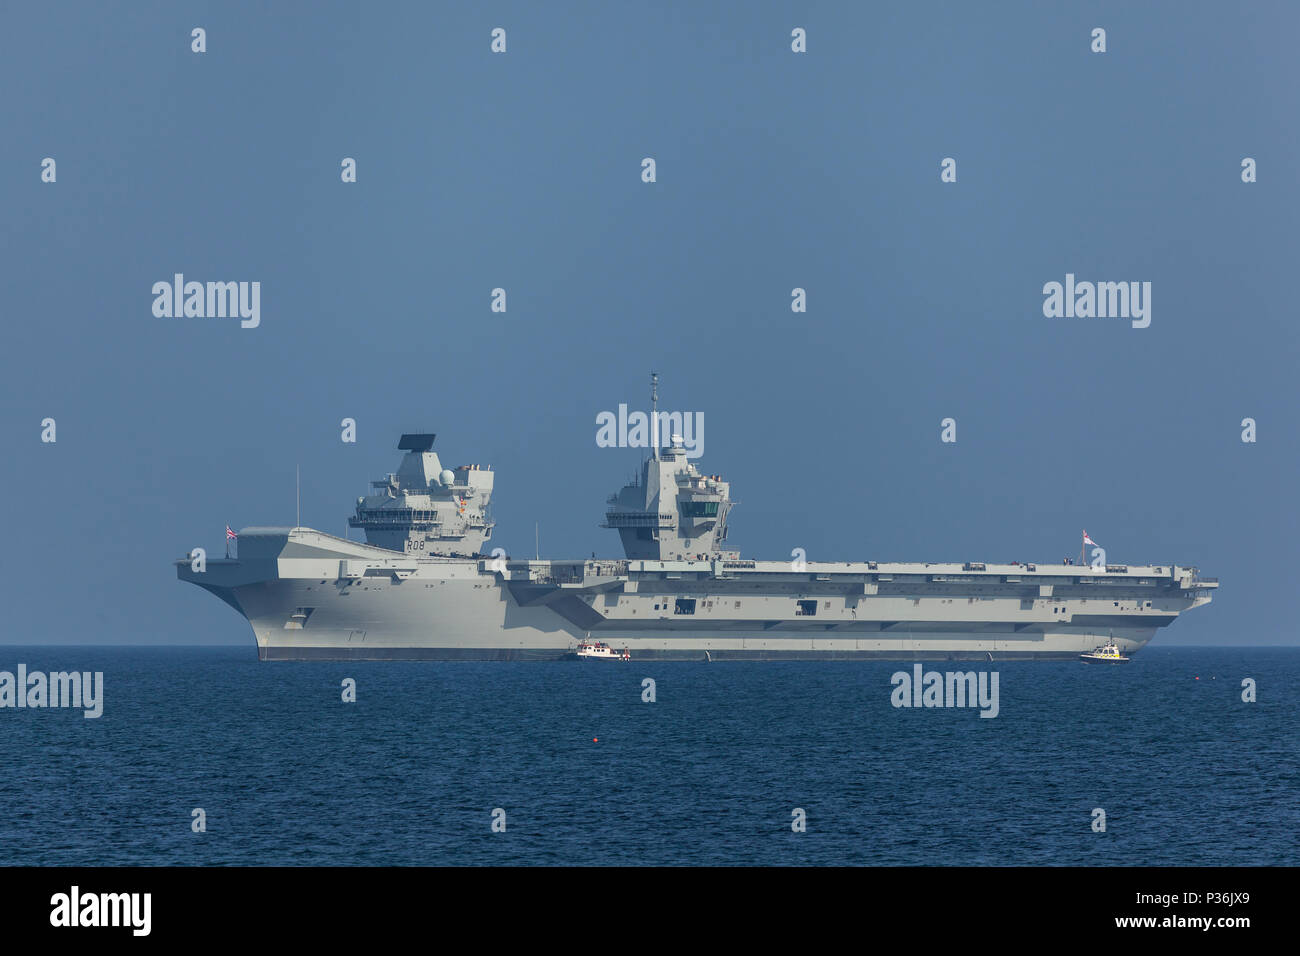 HMS Queen Elizabeth waiting while being loaded by Cornish Coast (Newlyn) - Stock Image